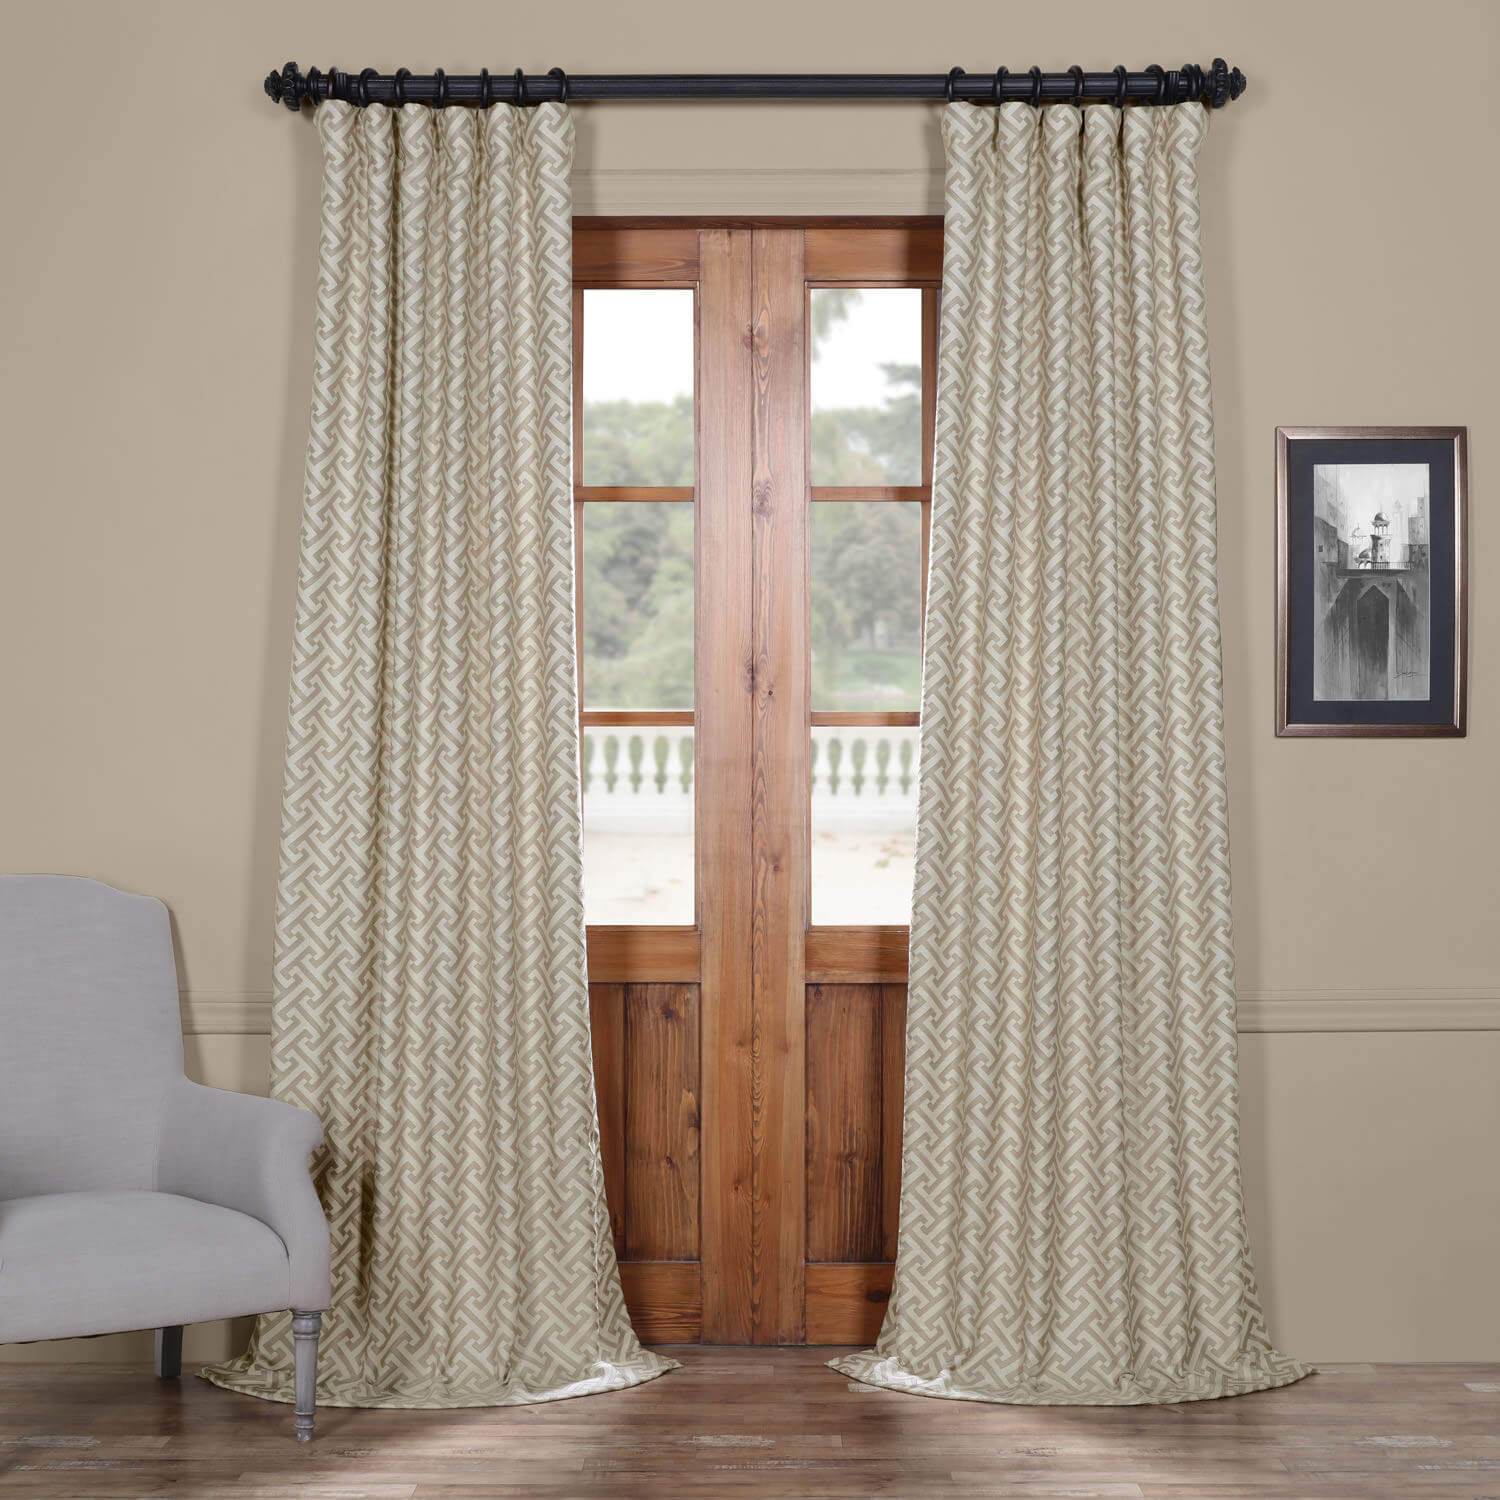 silk fabric curtain curtains textiles natural designed linen